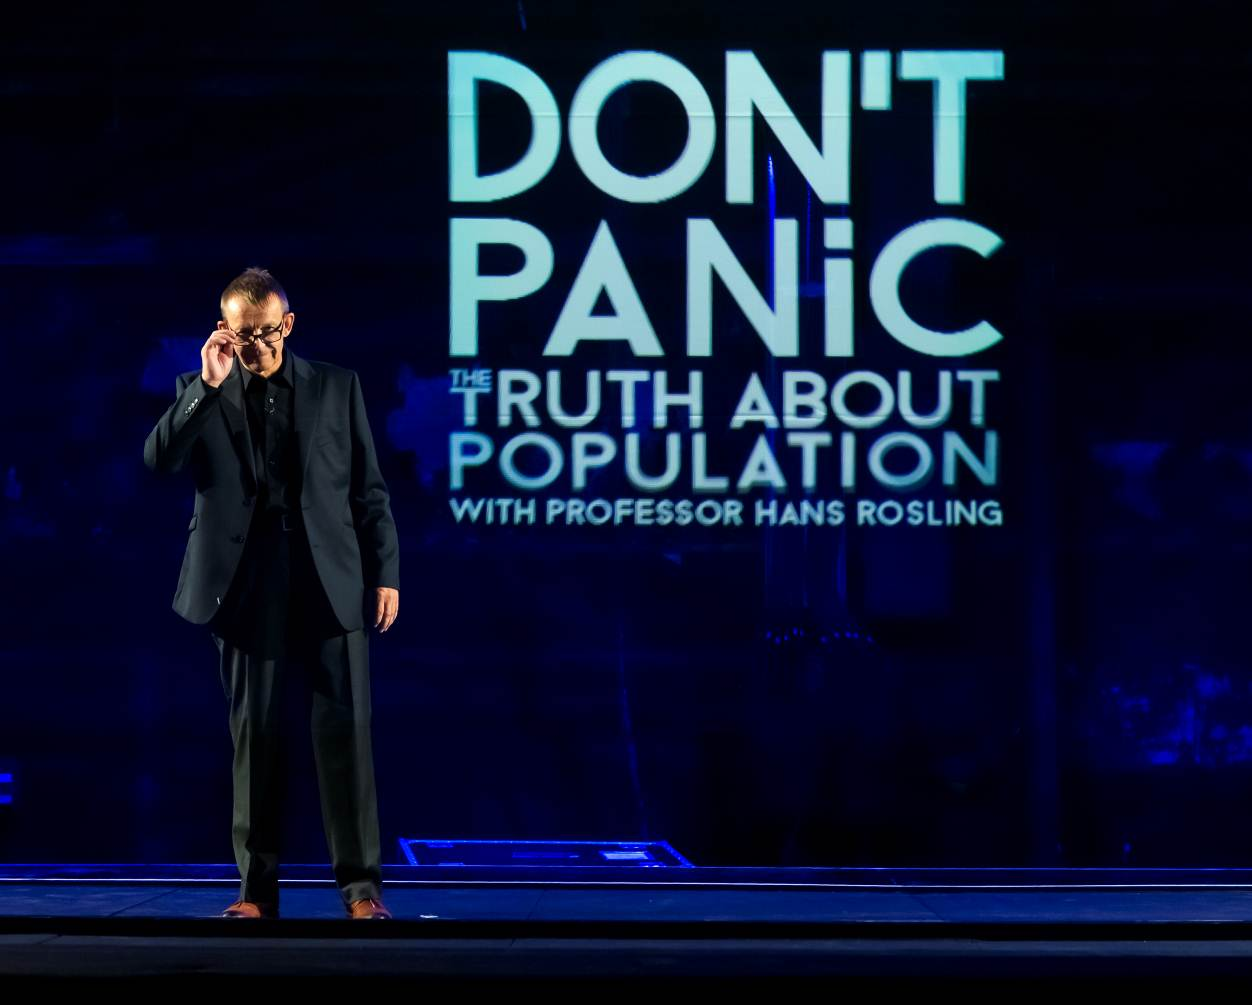 Hans Rosling standing on the stage, presenting Dont Panic - The Truth About Population Sizes